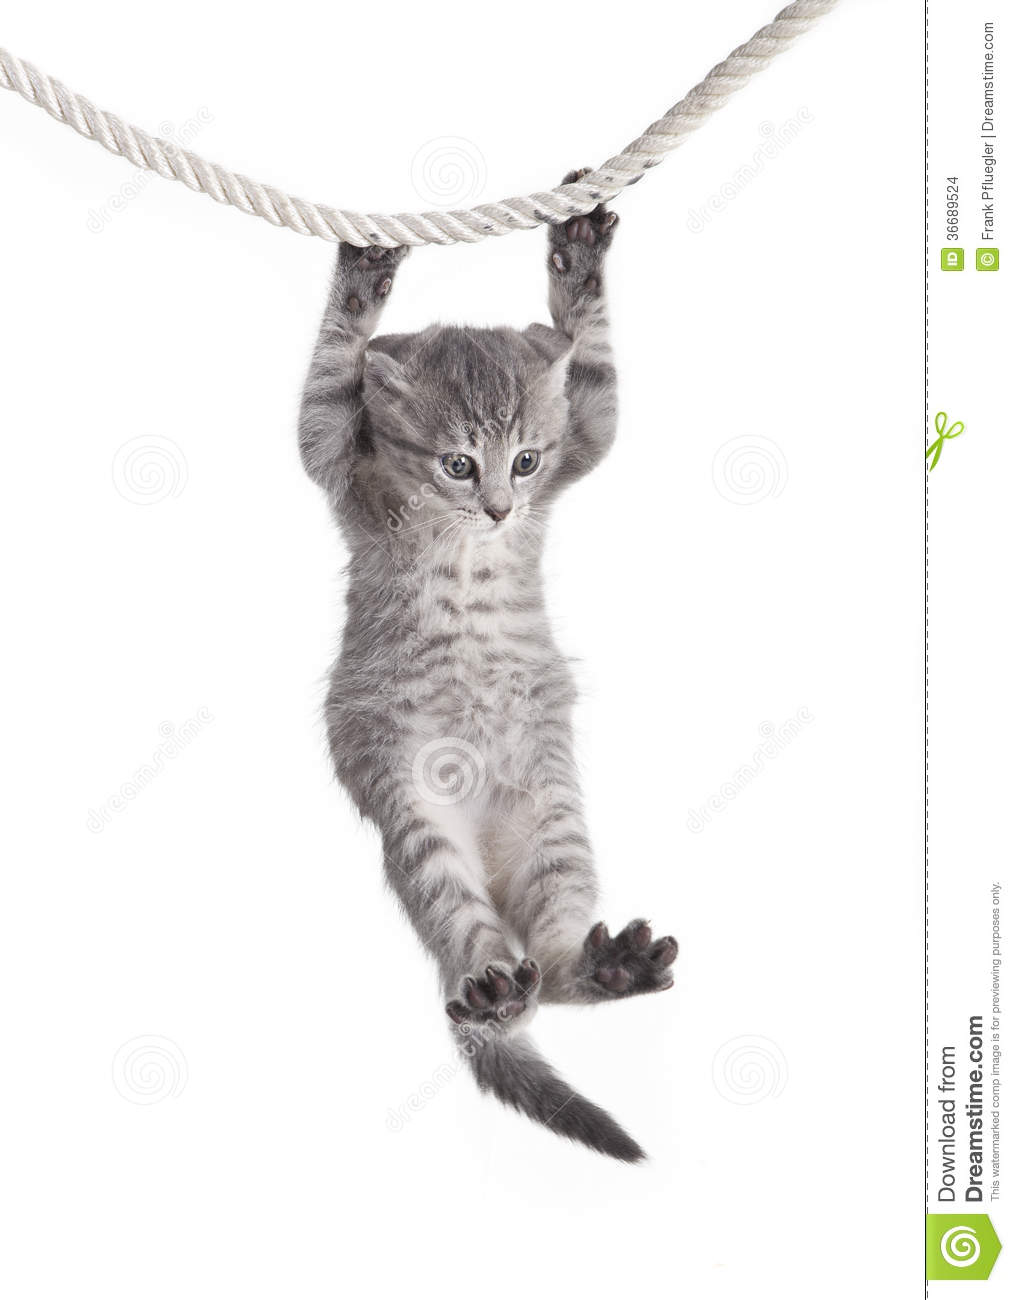 Small tabby cat baby hanging on rope, white background, isolated.